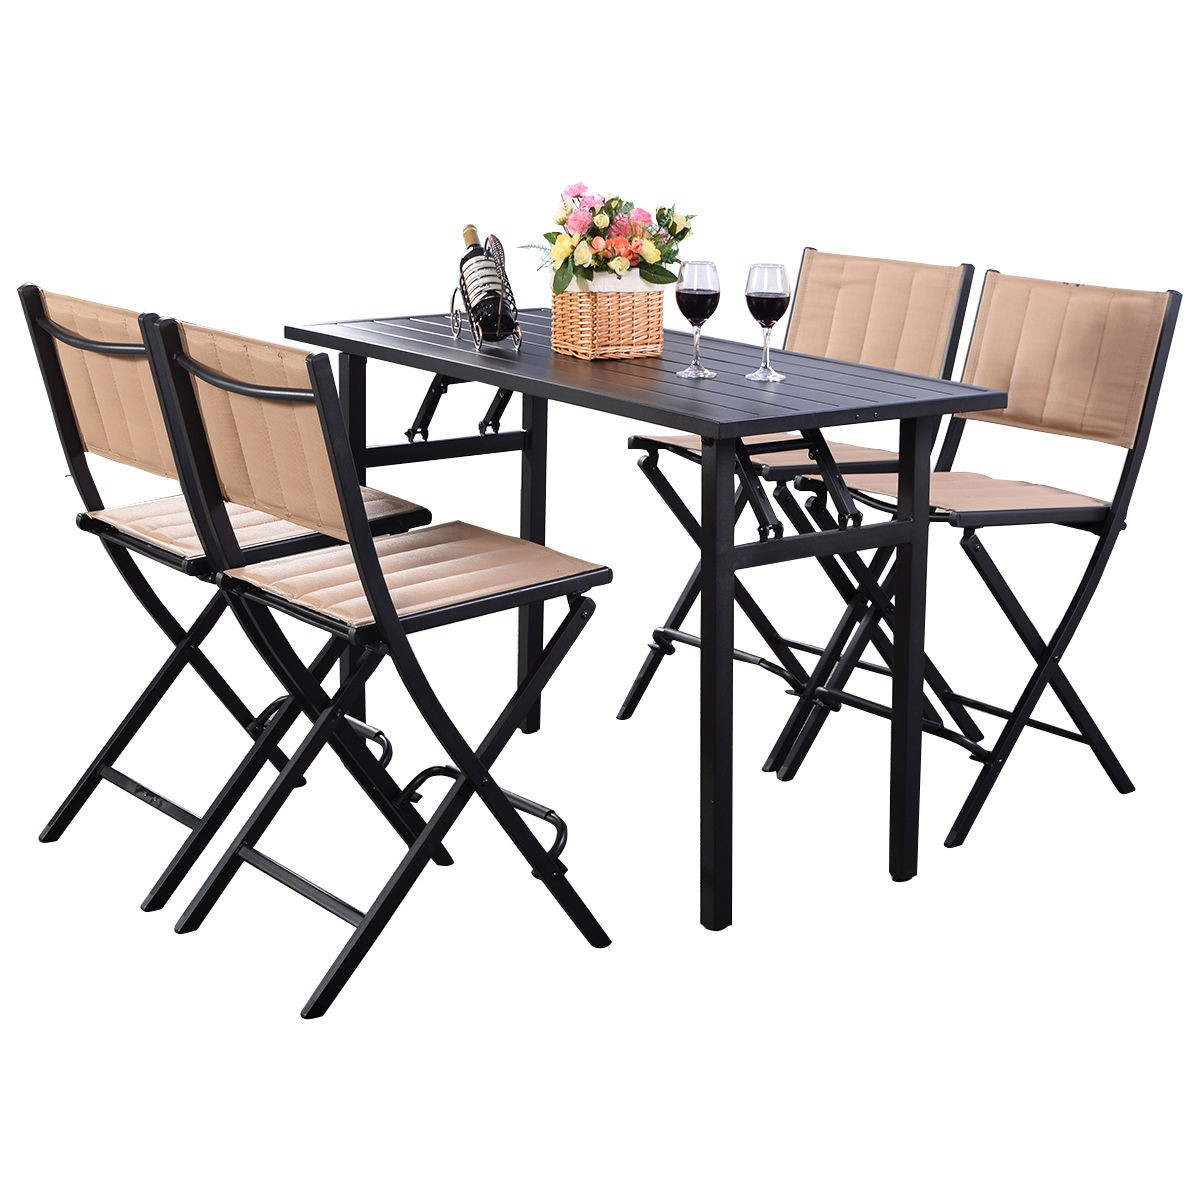 5 pcs patio outdoor folding chairs rect table backyard for Poolside table and chairs